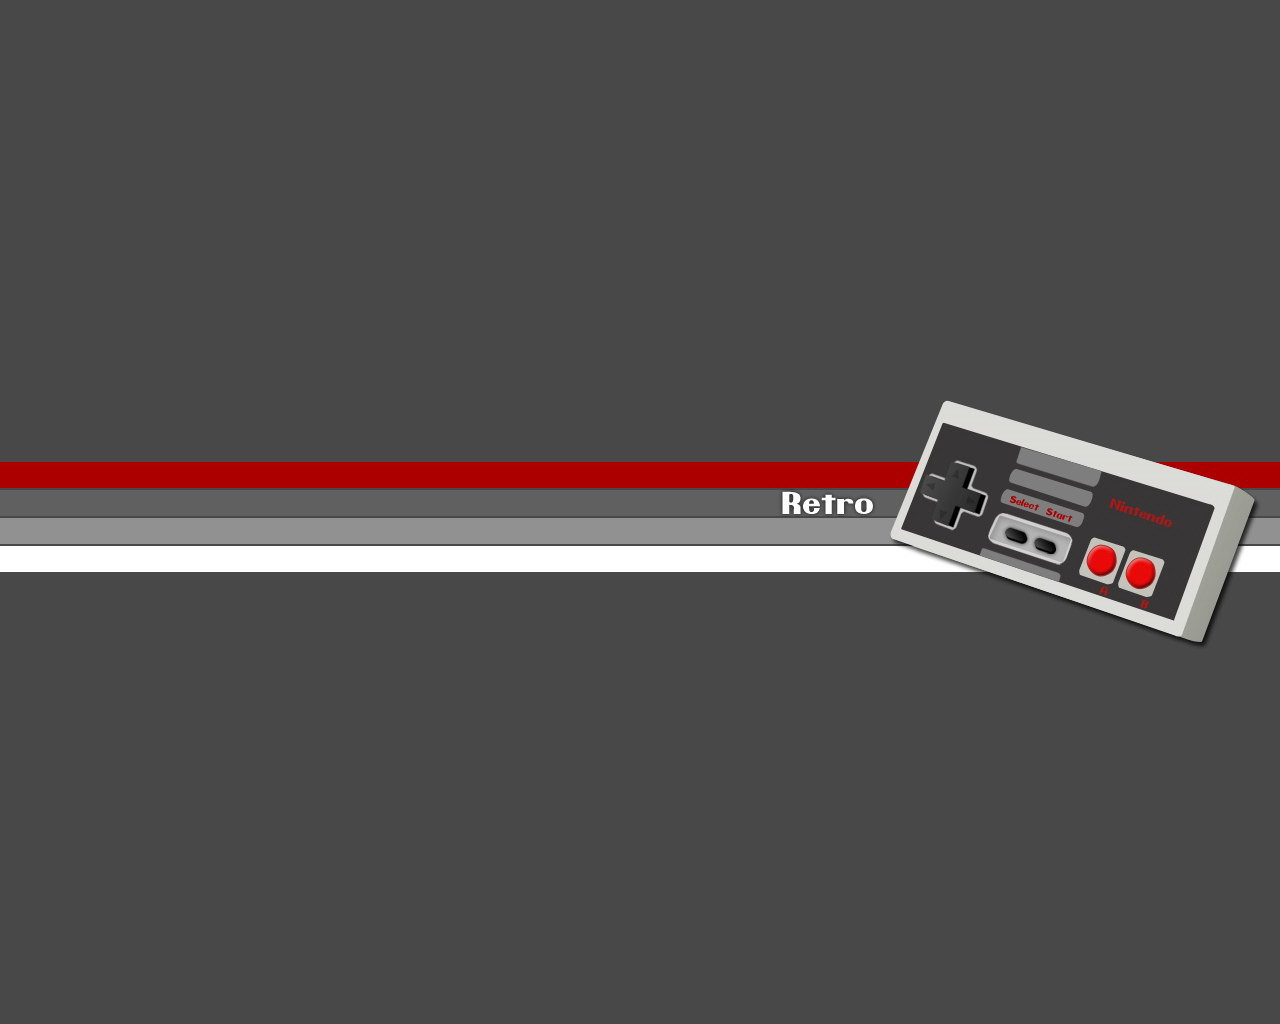 retro game console wallpaper - photo #3